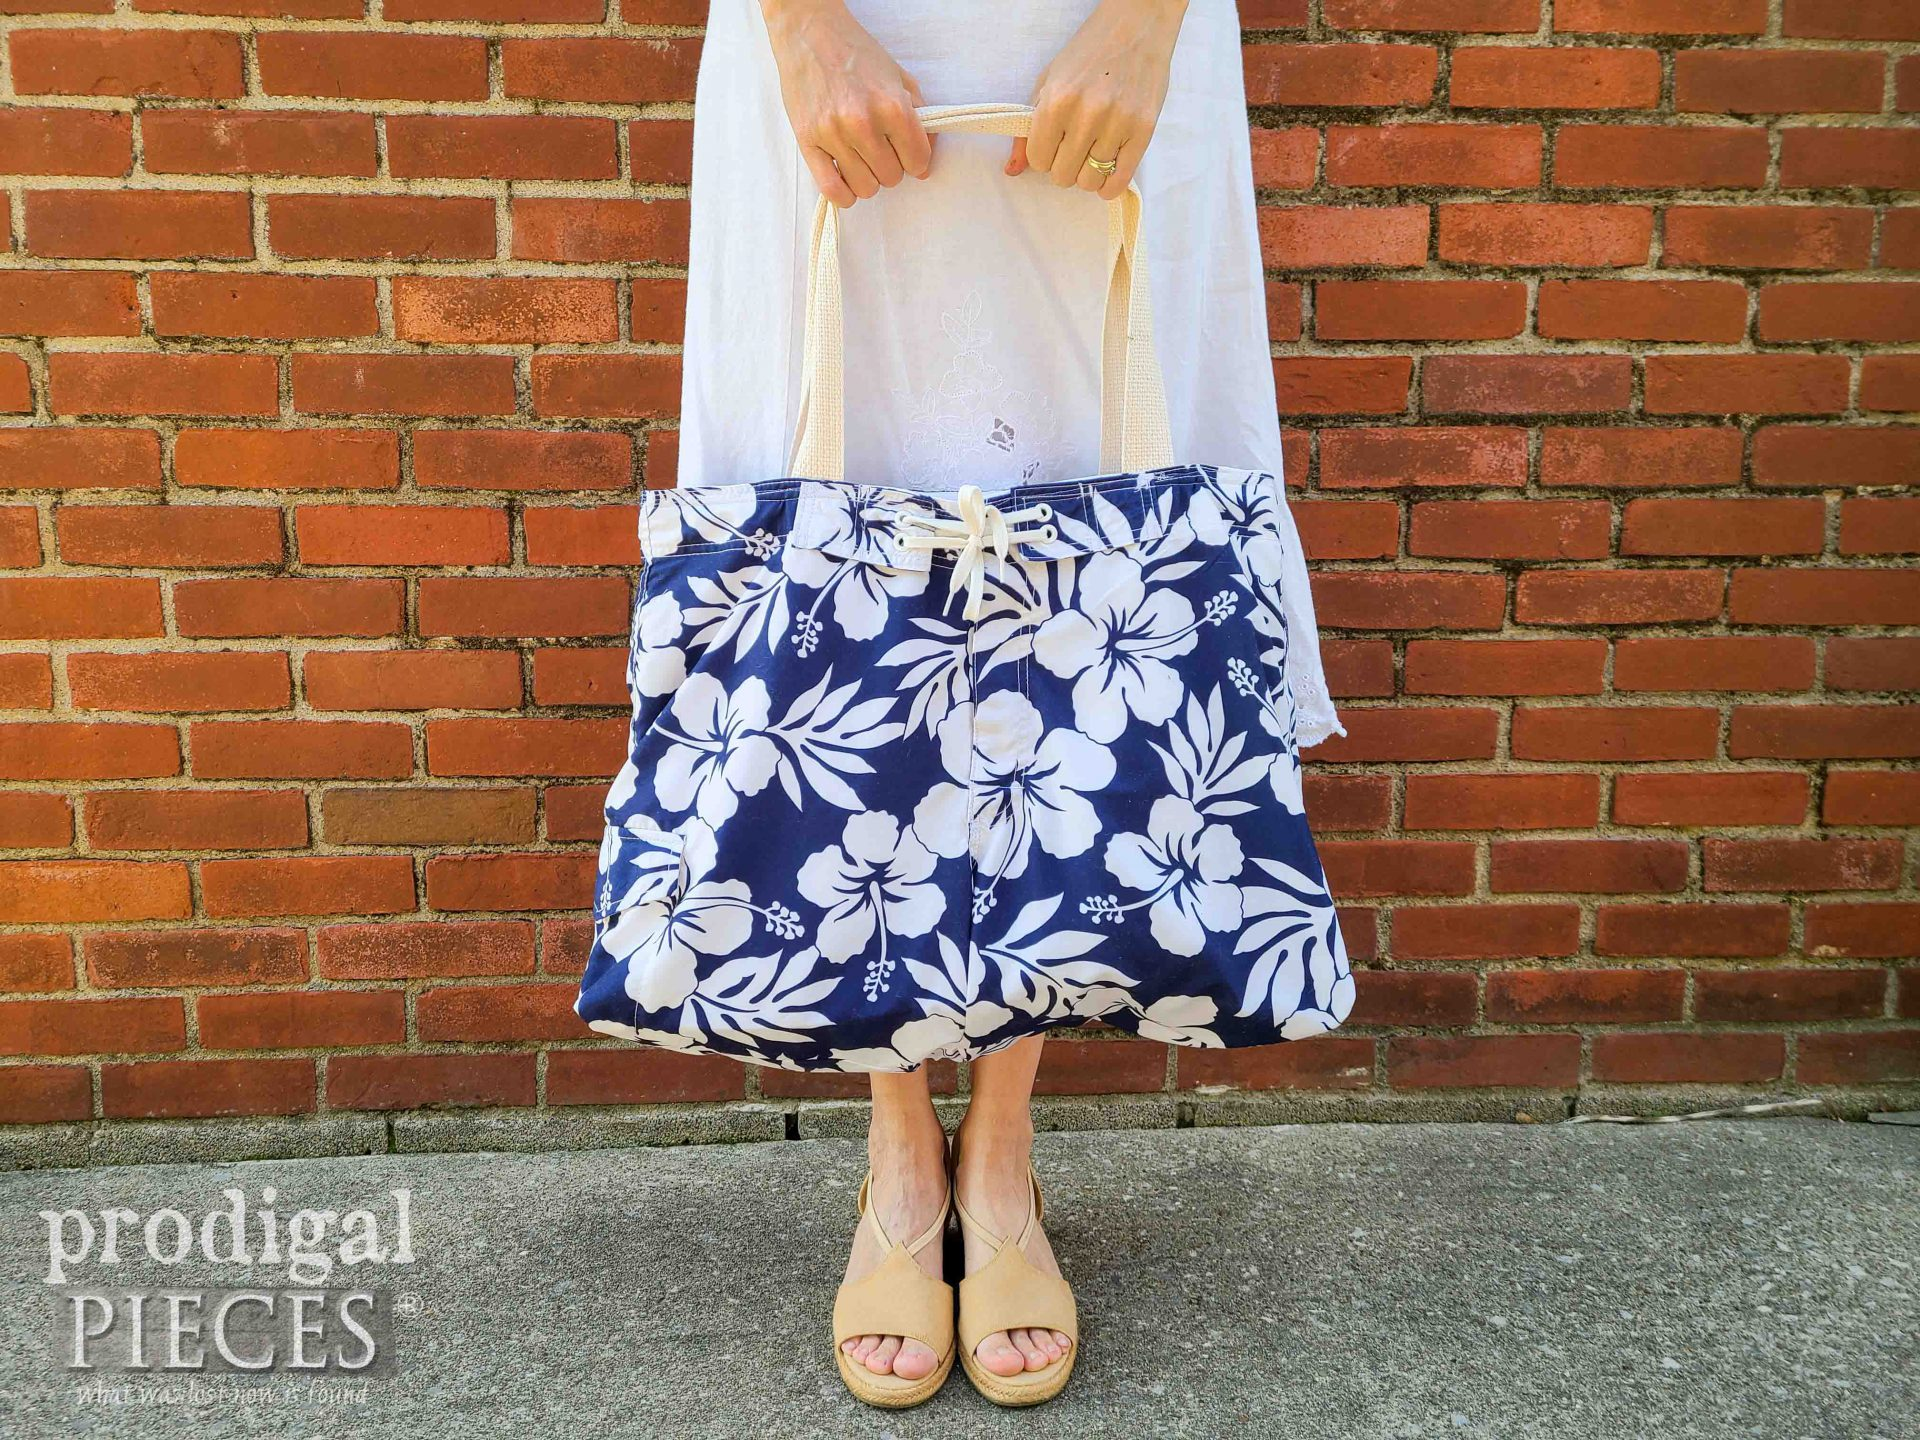 Handmade Swimsuit Bag from Upcycled Swim Trunks by Larissa of Prodigal Pieces   prodigalpieces.com #prodigalpieces #refashion #swimming #fashion #handmade